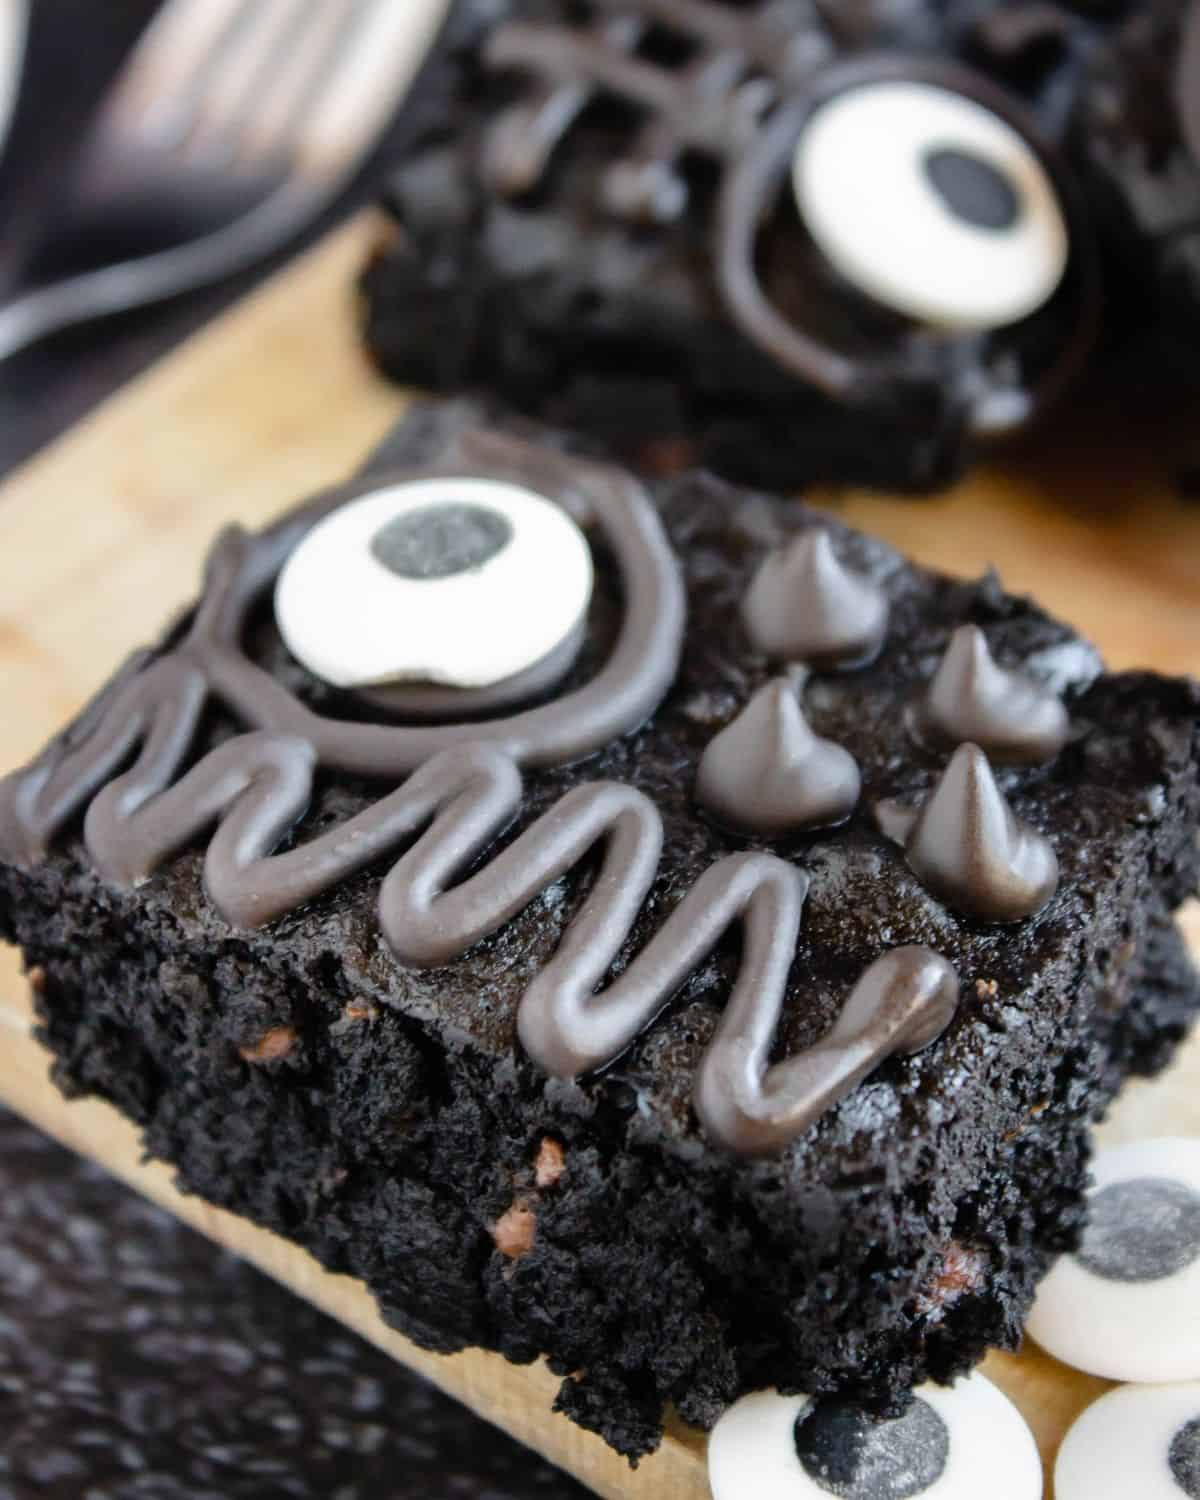 A brownie slice on a wooden board topped with a candy eye ball and chocolate icing design.